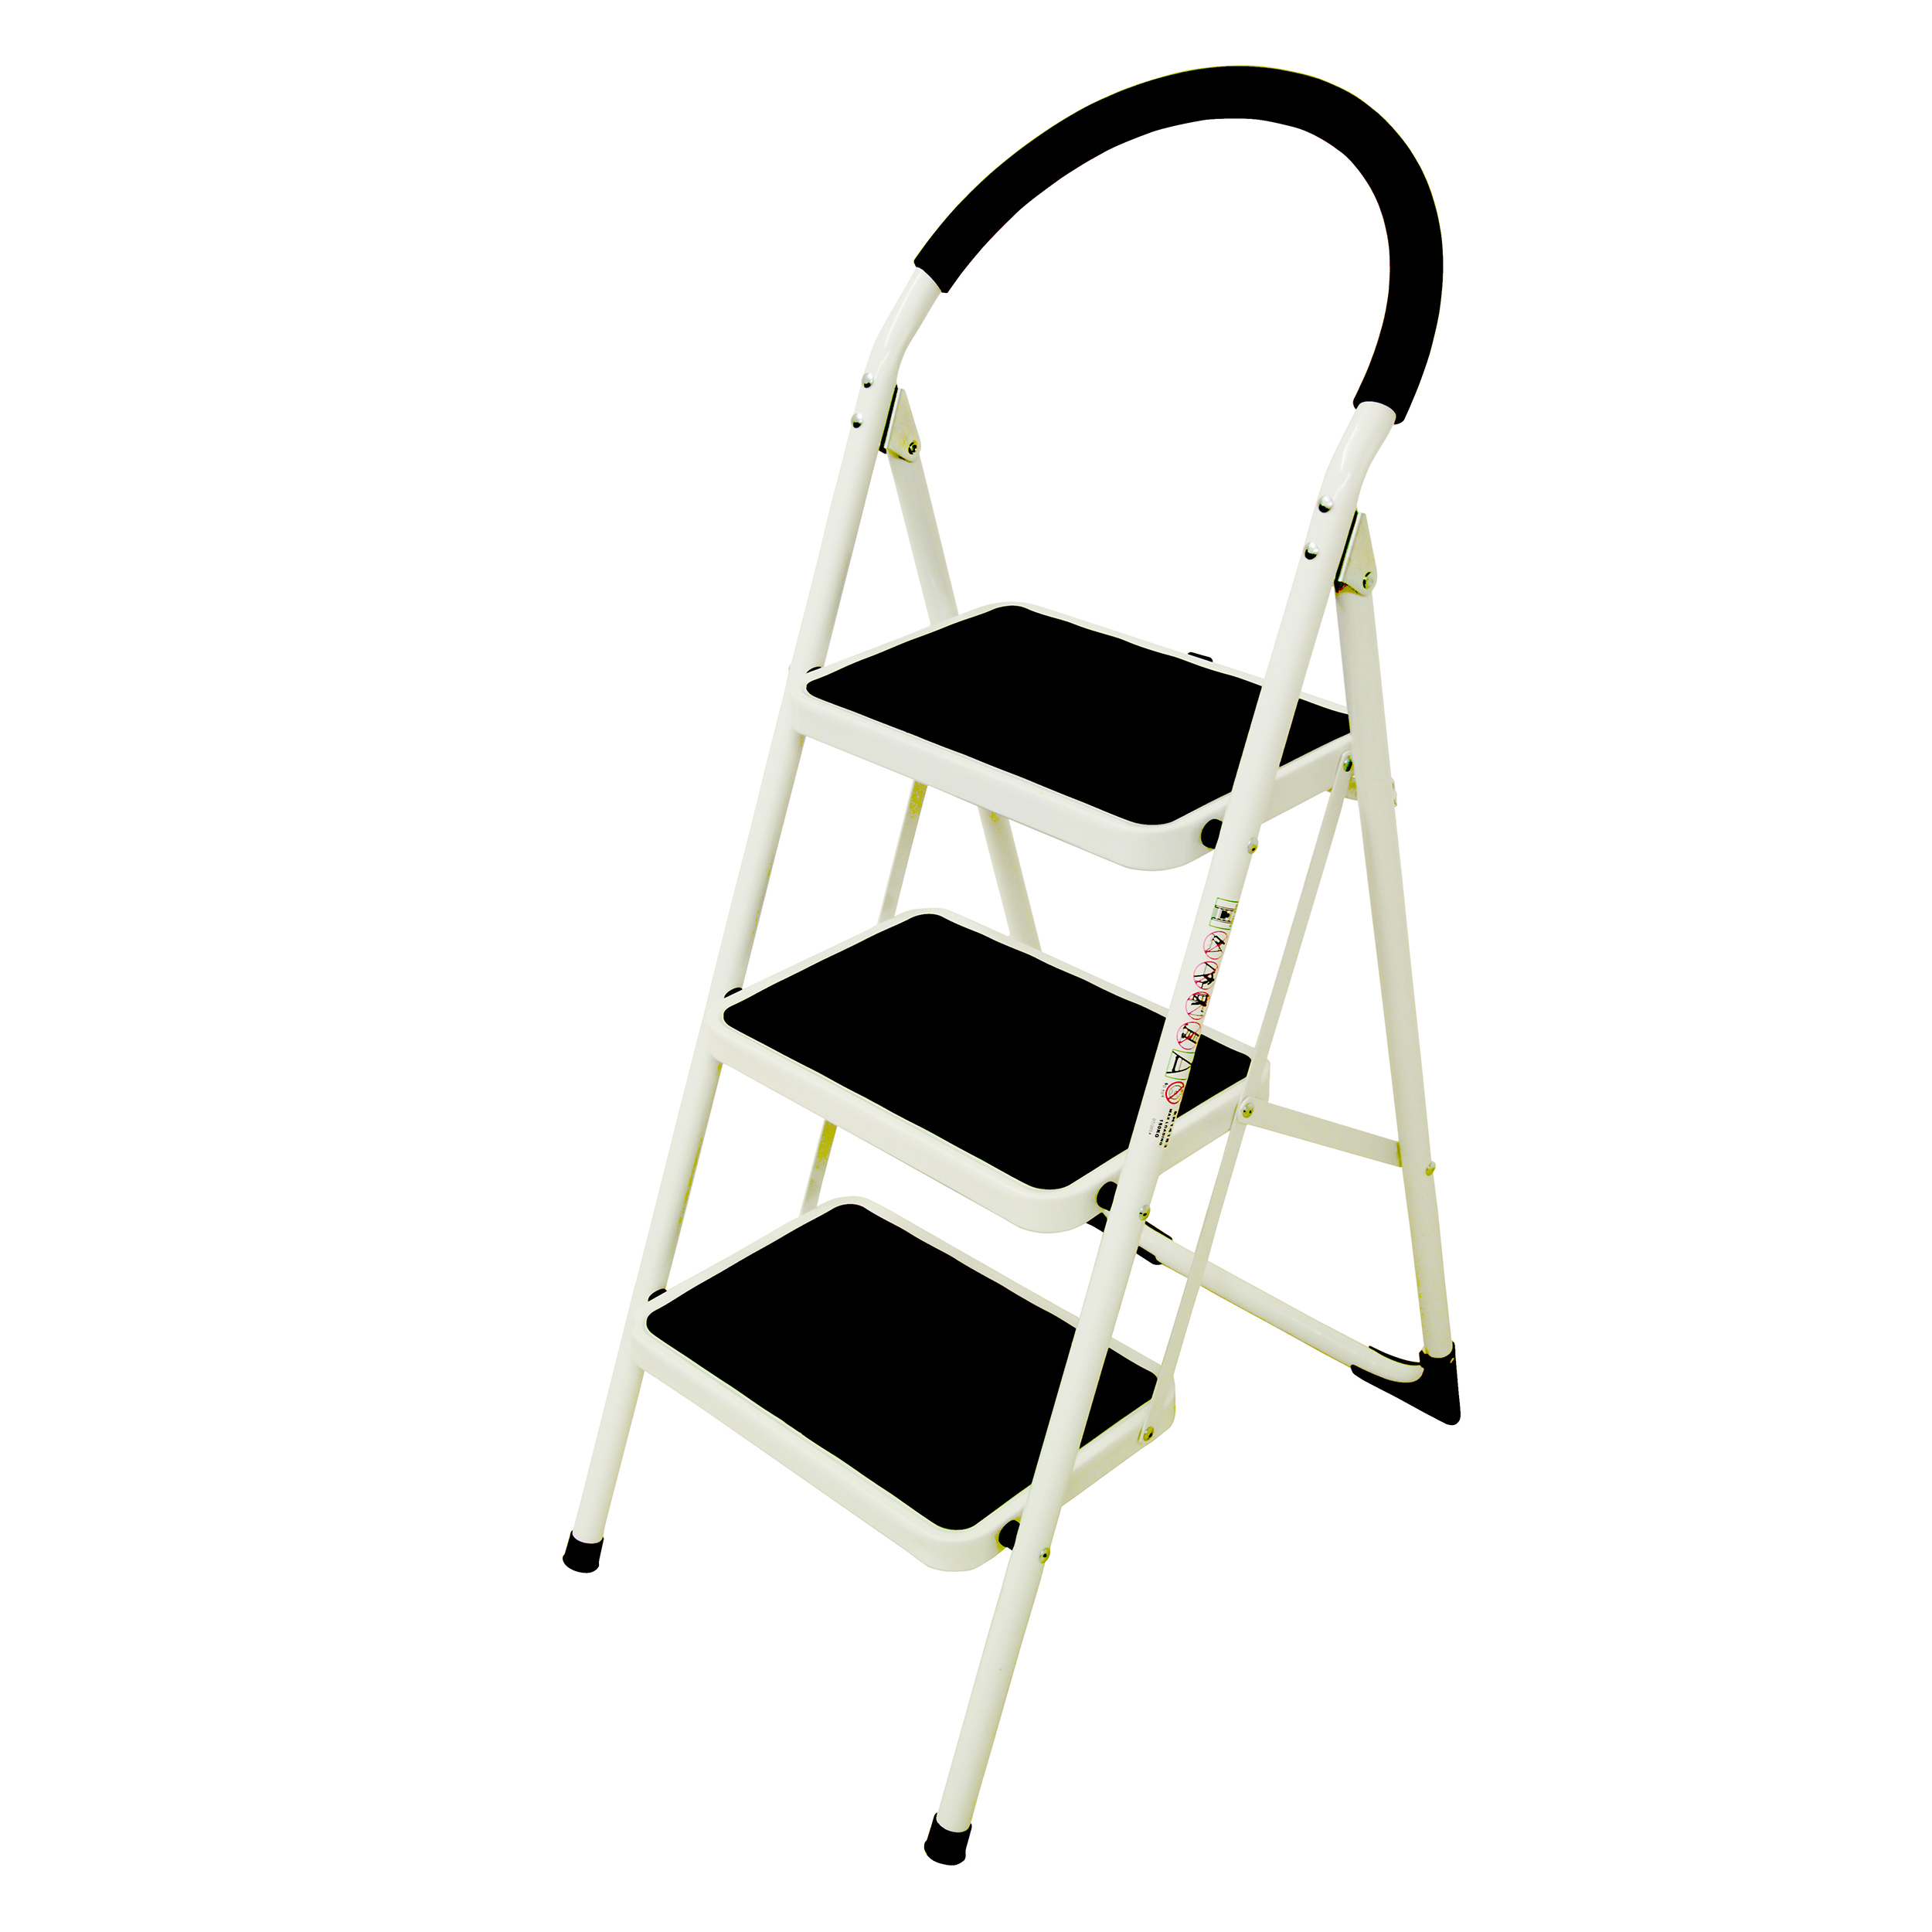 Step stool Folding Step Ladder 3 Tread Capacity 150kg White Frame